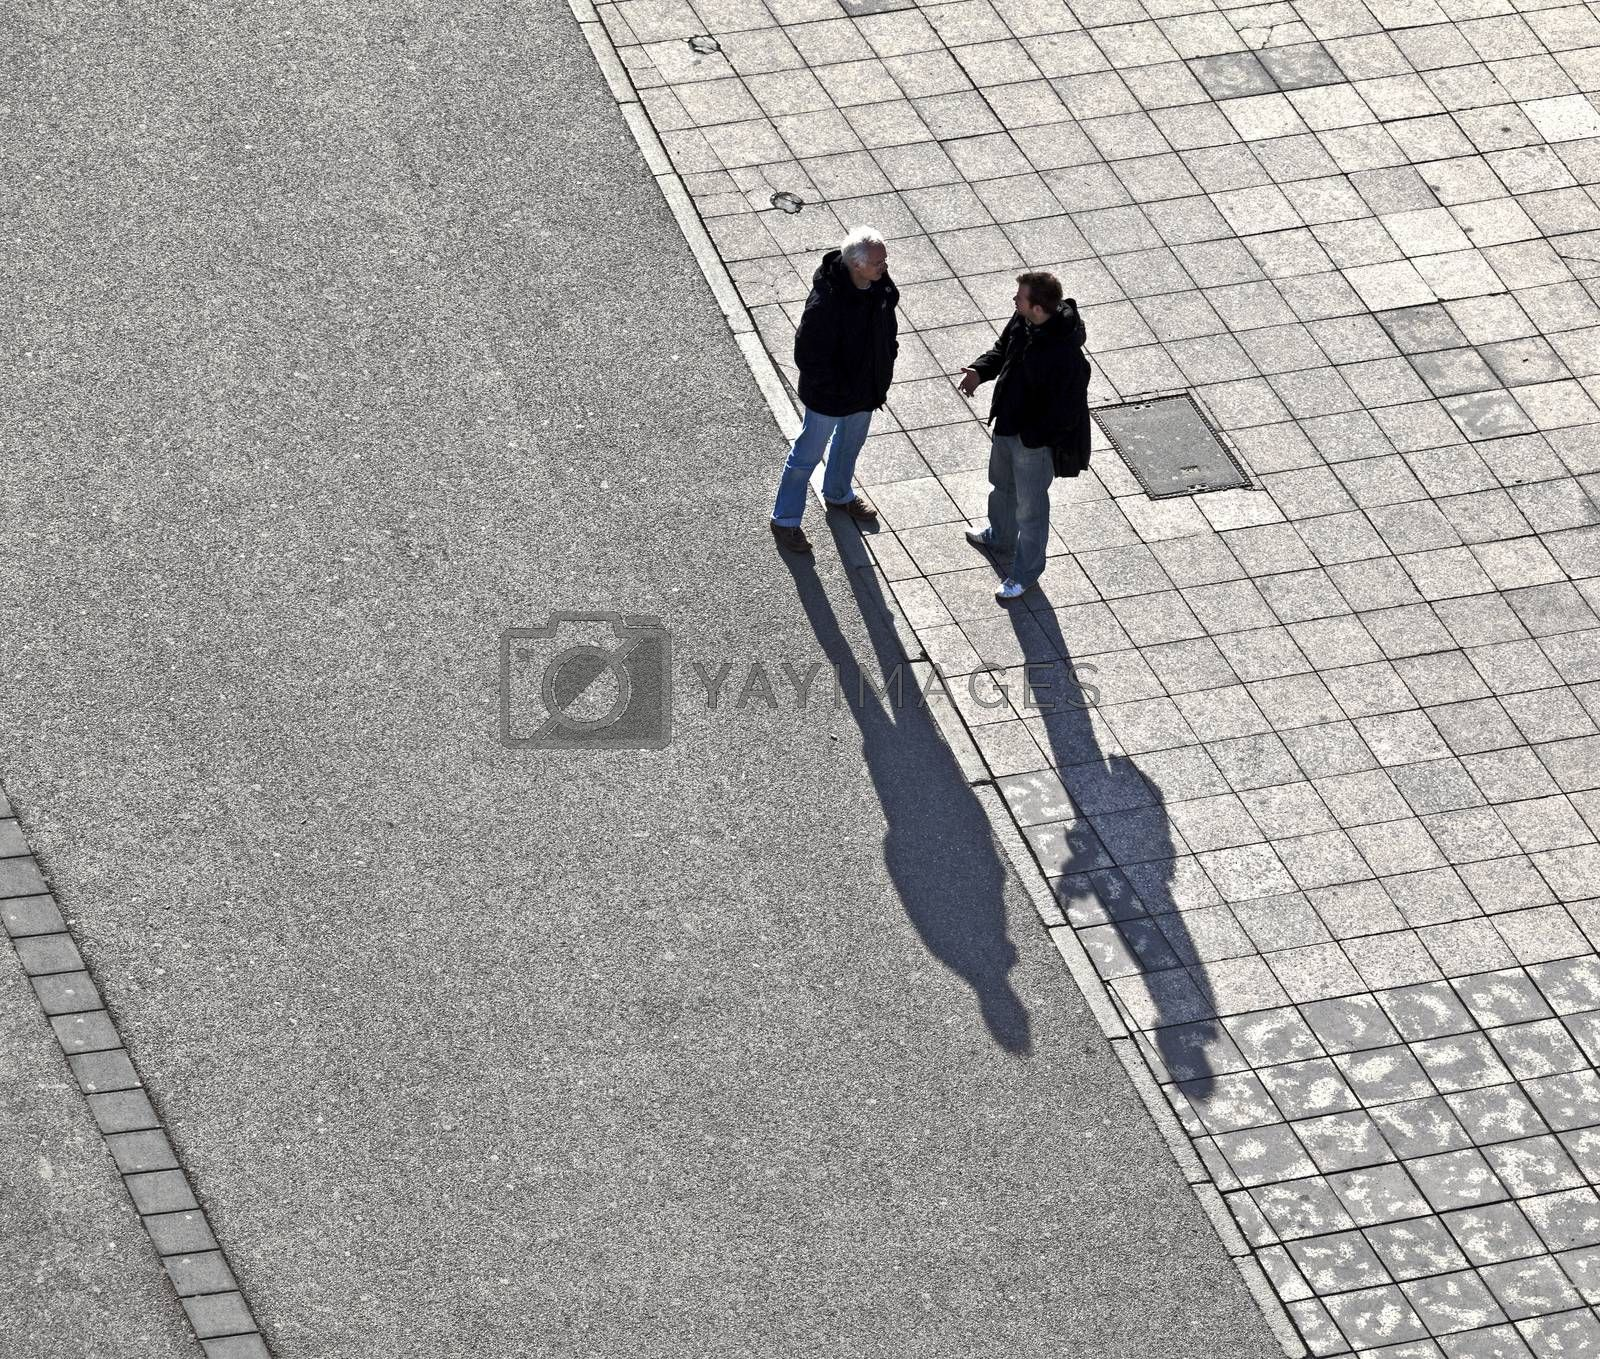 FRANKFURT, GERMANY - FEB 9, 2014: people walk in early morning along the pedestrian zone  in Frankfurt, Germany. It was inauguratet in Feb 2009 and guarantees a full downtown pedestrian zone.